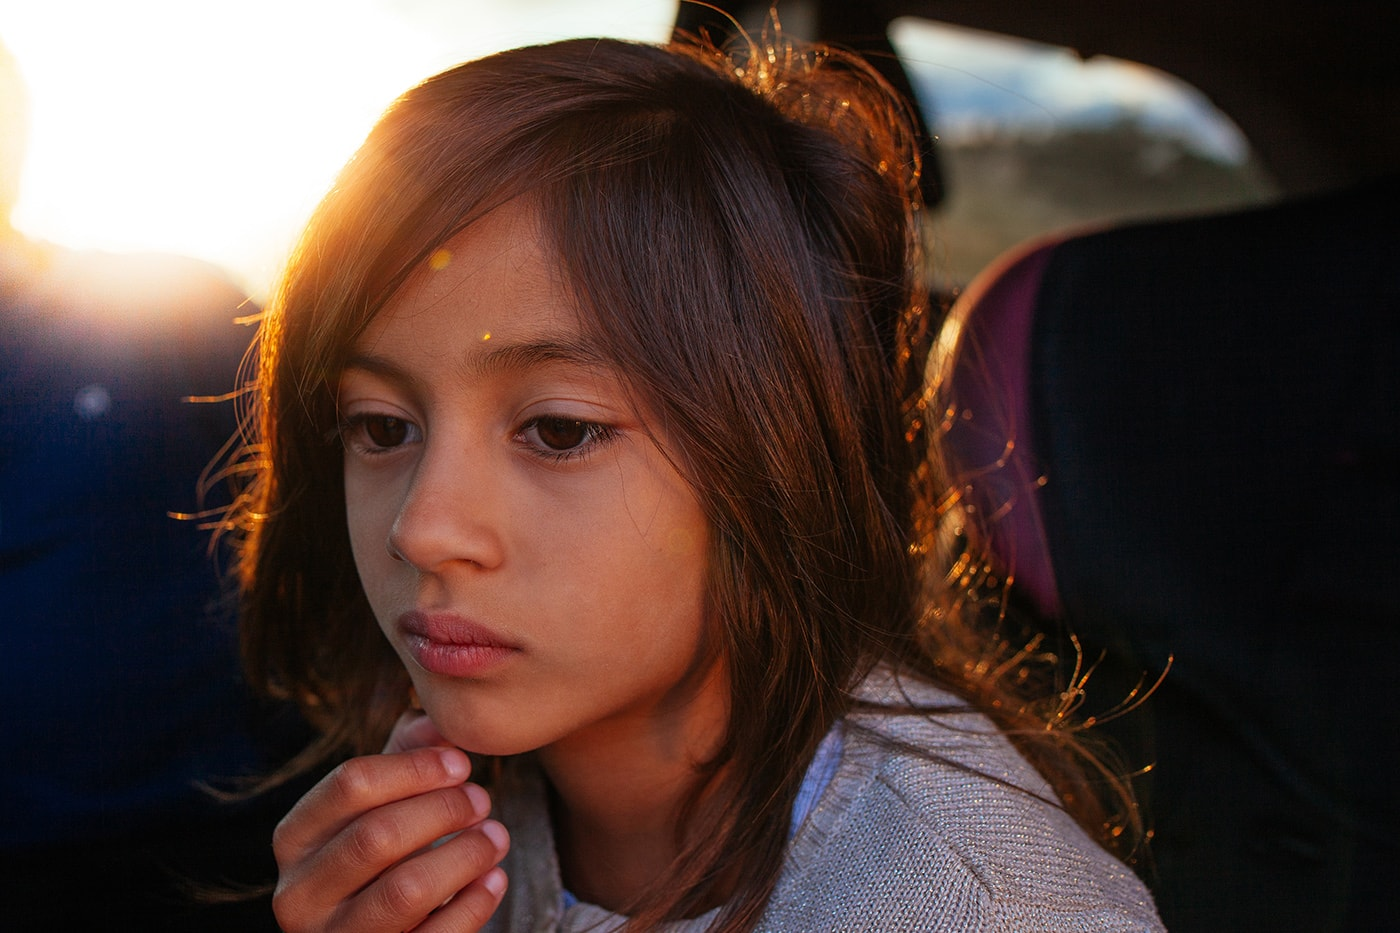 A portrait of a young girl staring off camera with her hand touching her chin.